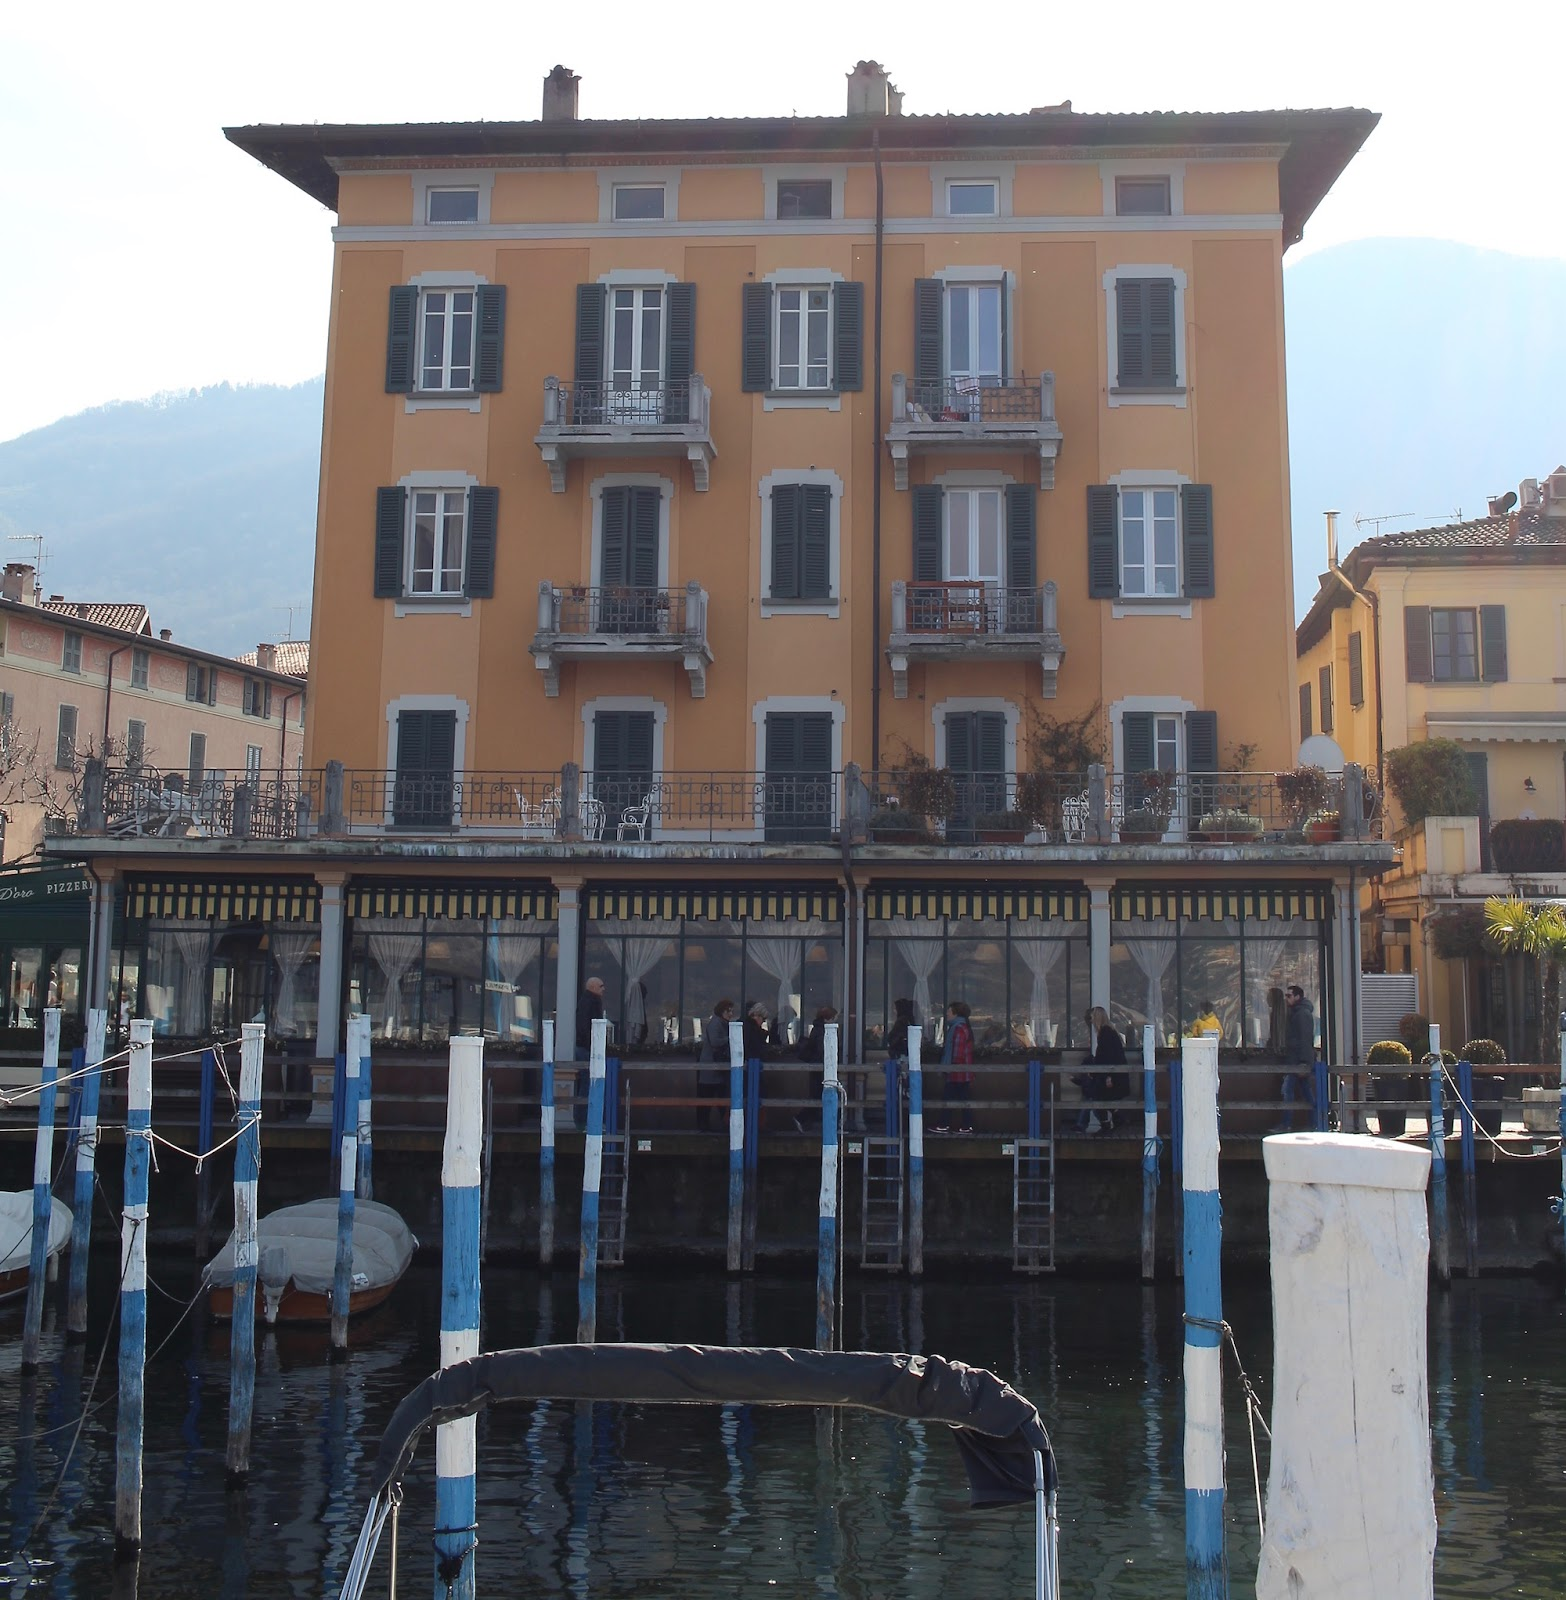 lake iseo italy peexo travel blogger